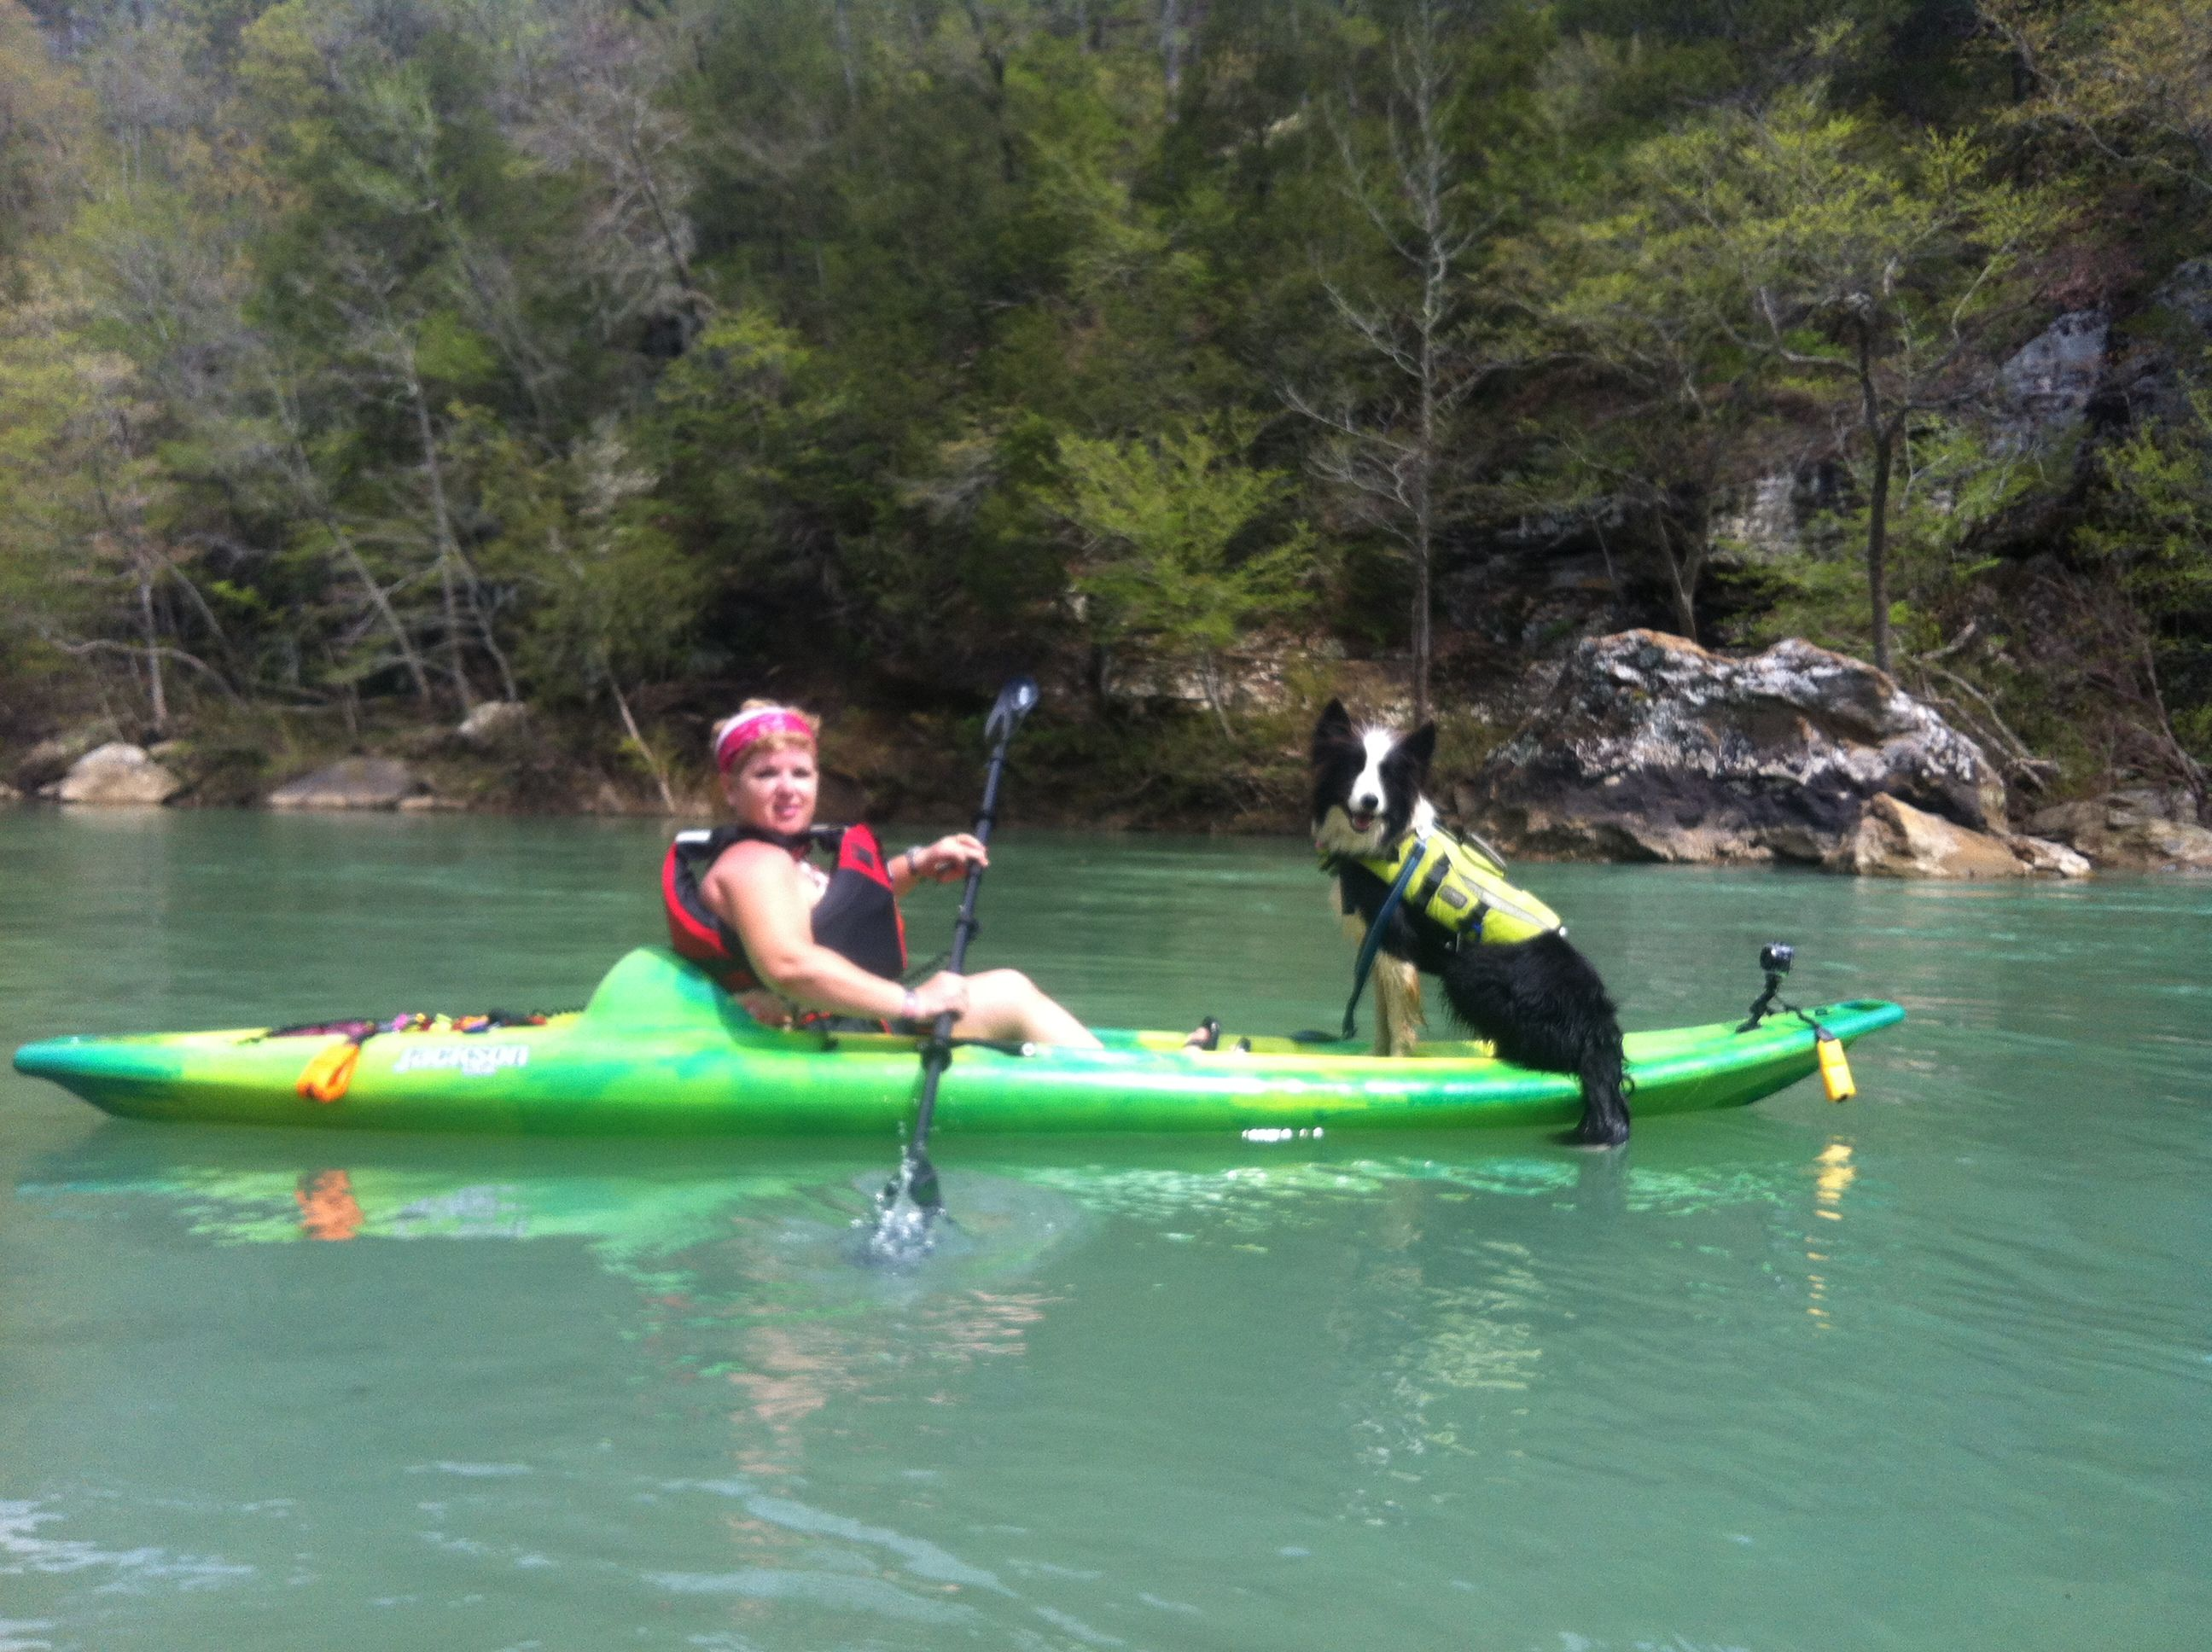 Sisco The Border Collie Loves To Kayak He Fits Perfectly On Our